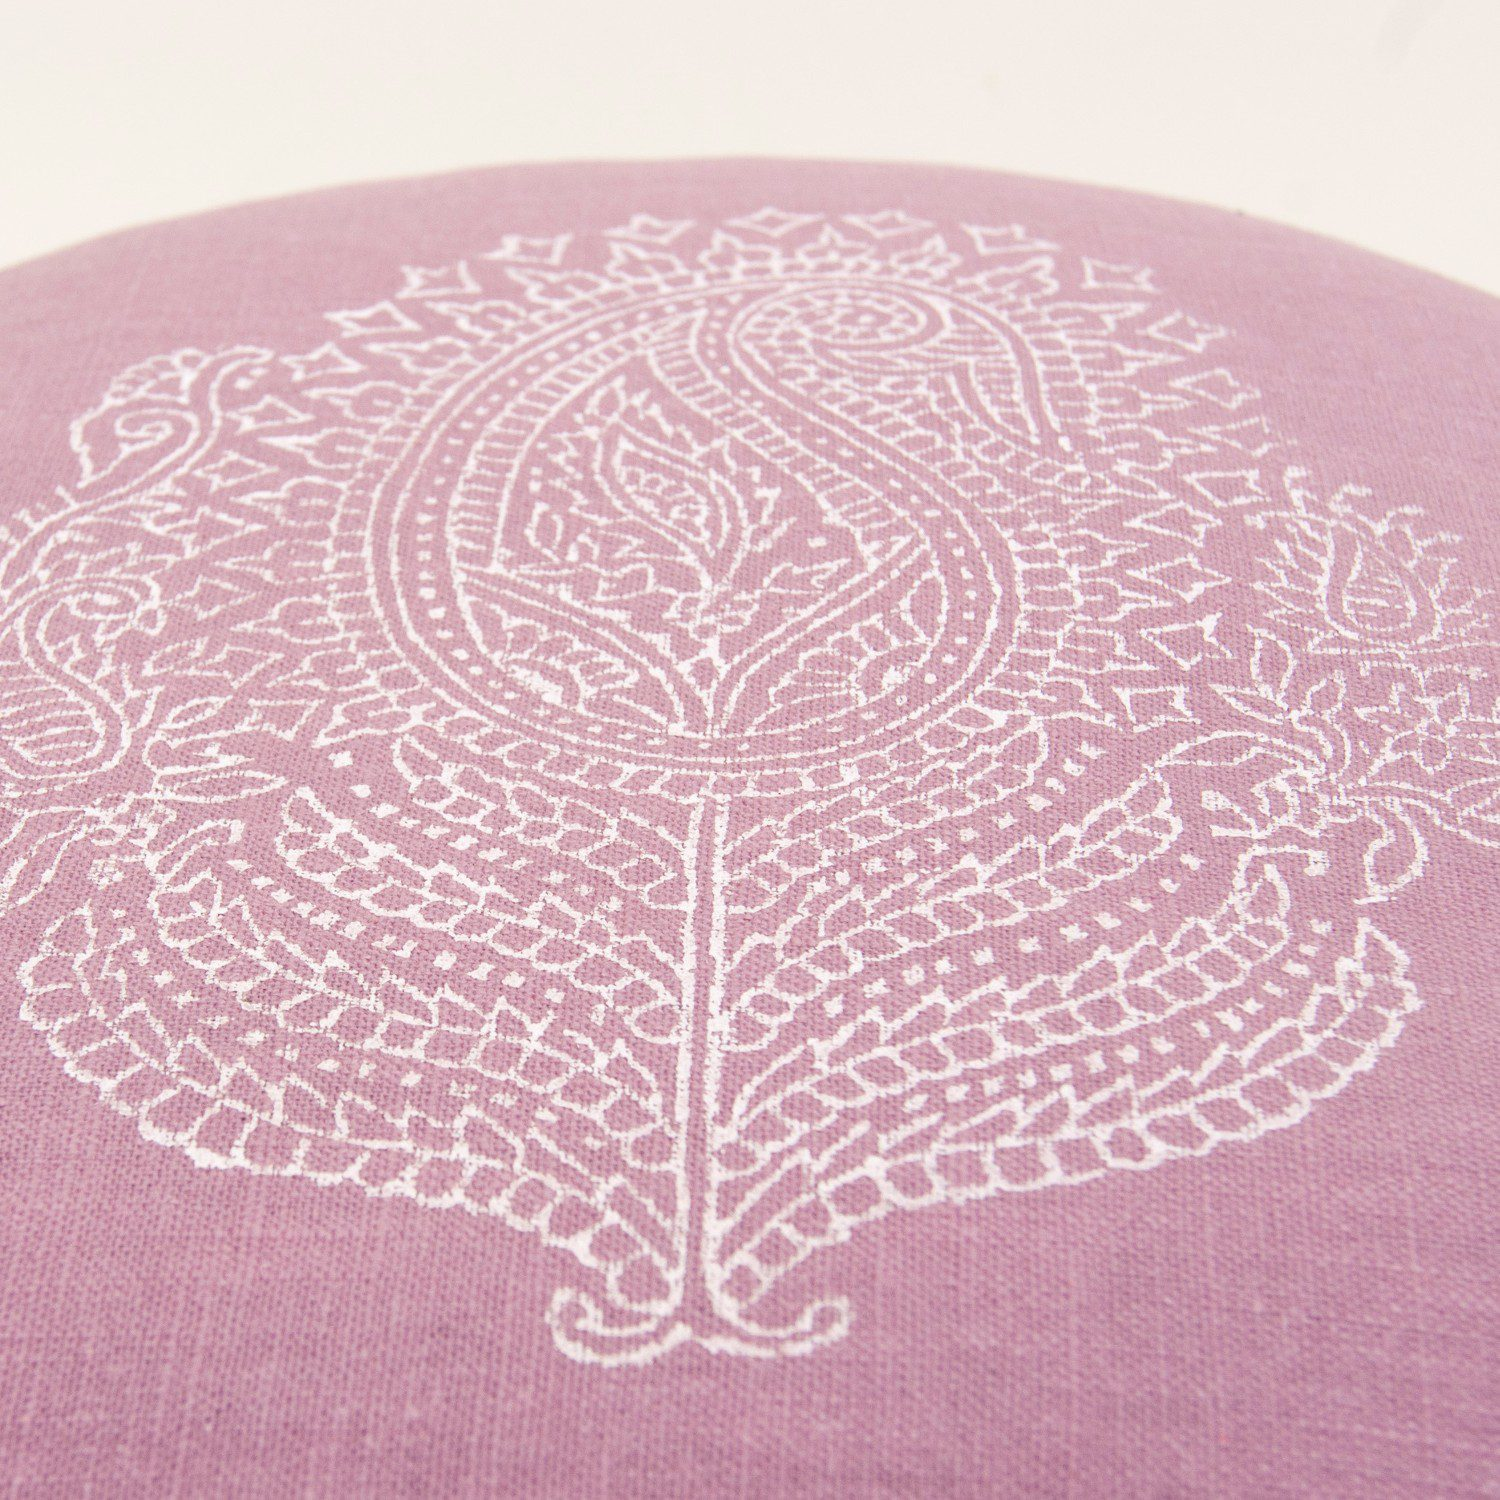 Meditation cushion Paisley